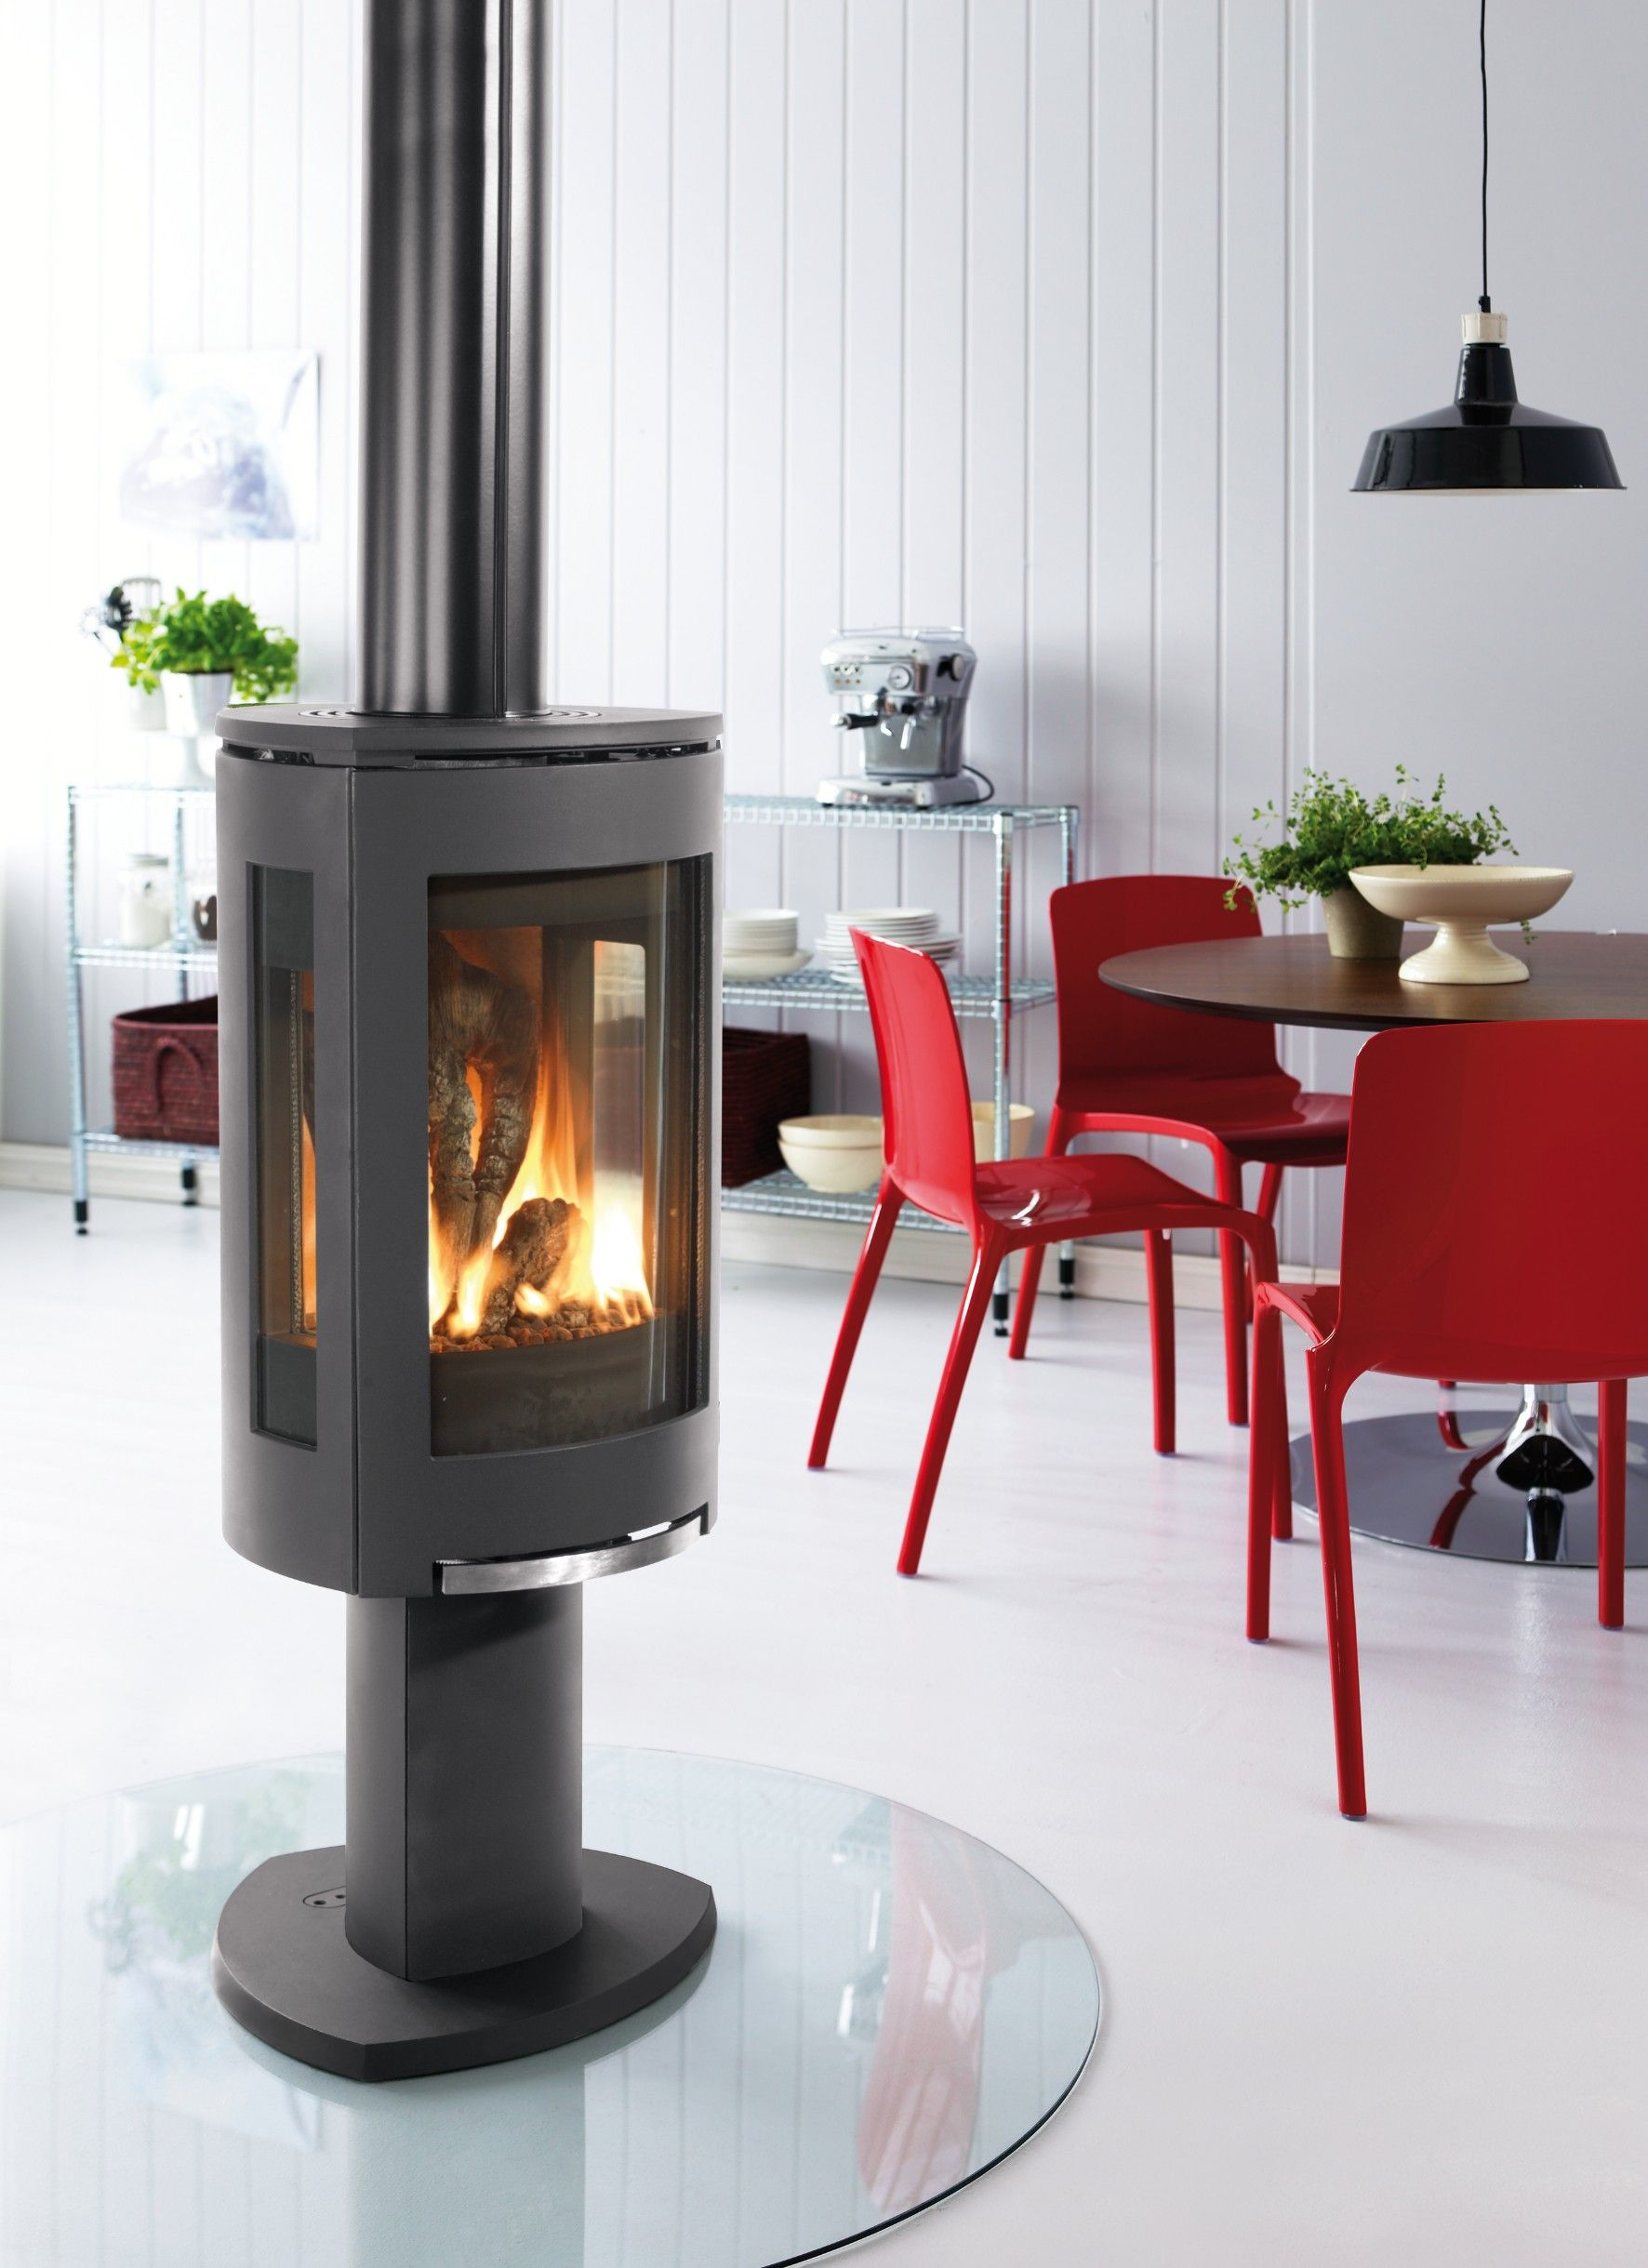 Jotul GF 370 DV Gas Stove: The Jotul GF 370 DV features ...